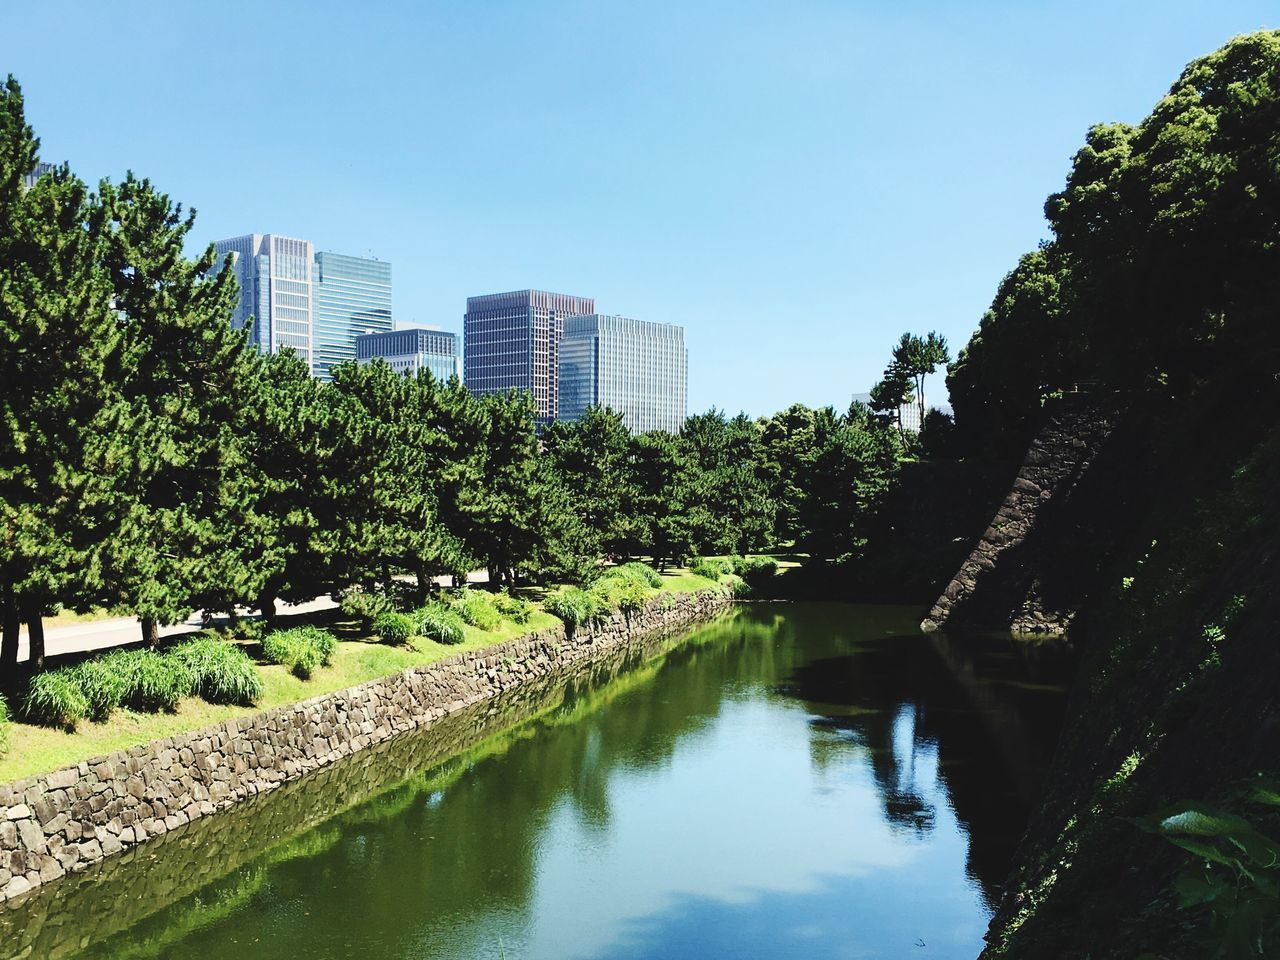 architecture, building exterior, built structure, tree, reflection, skyscraper, city, growth, modern, water, no people, outdoors, sky, clear sky, day, nature